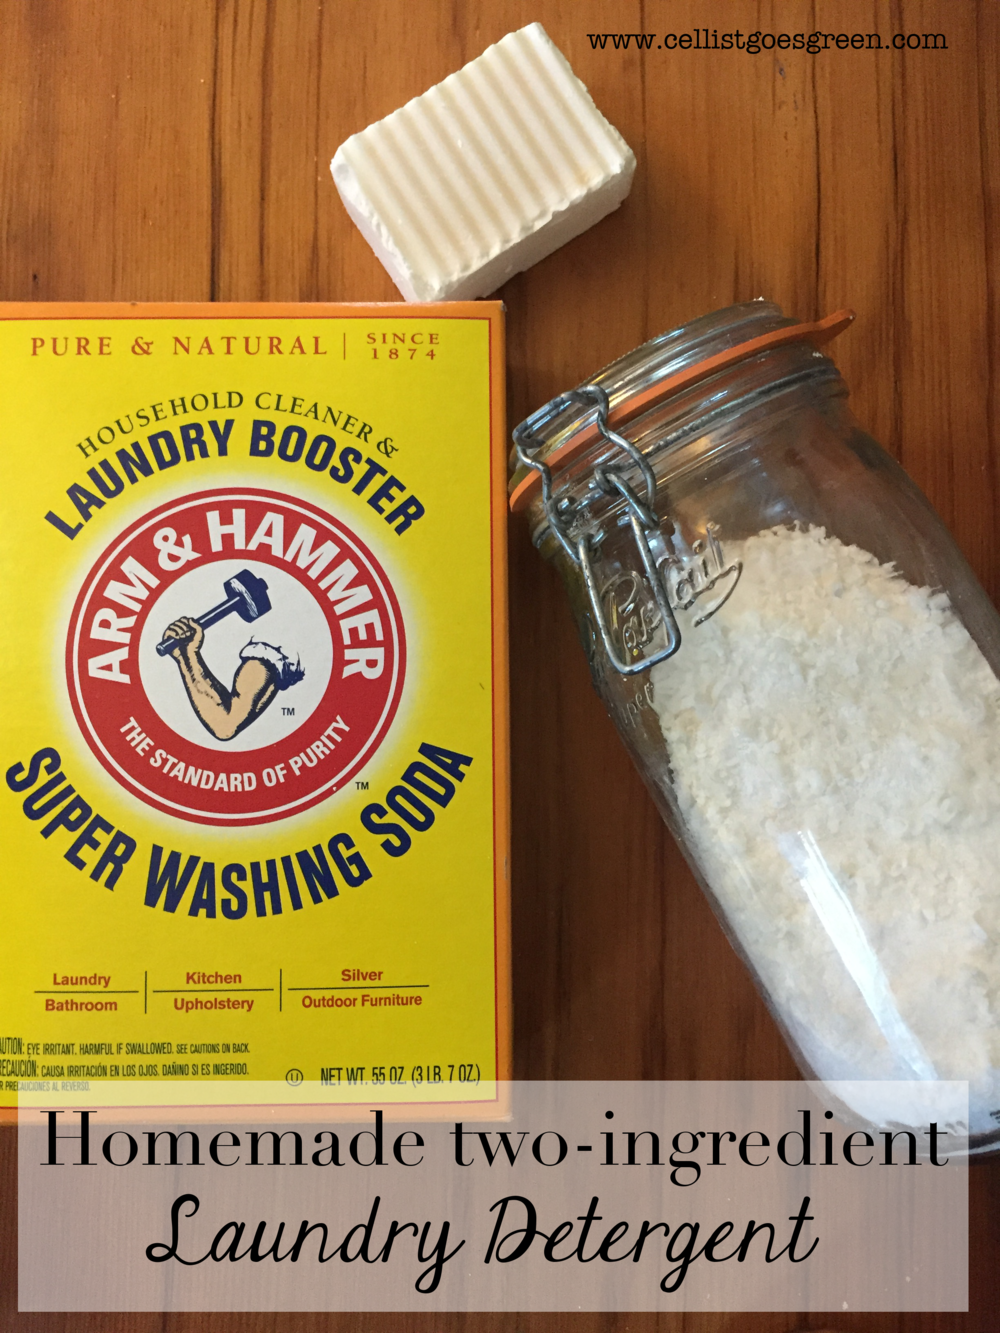 Two-ingredient laundry detergent | Cellist Goes Green